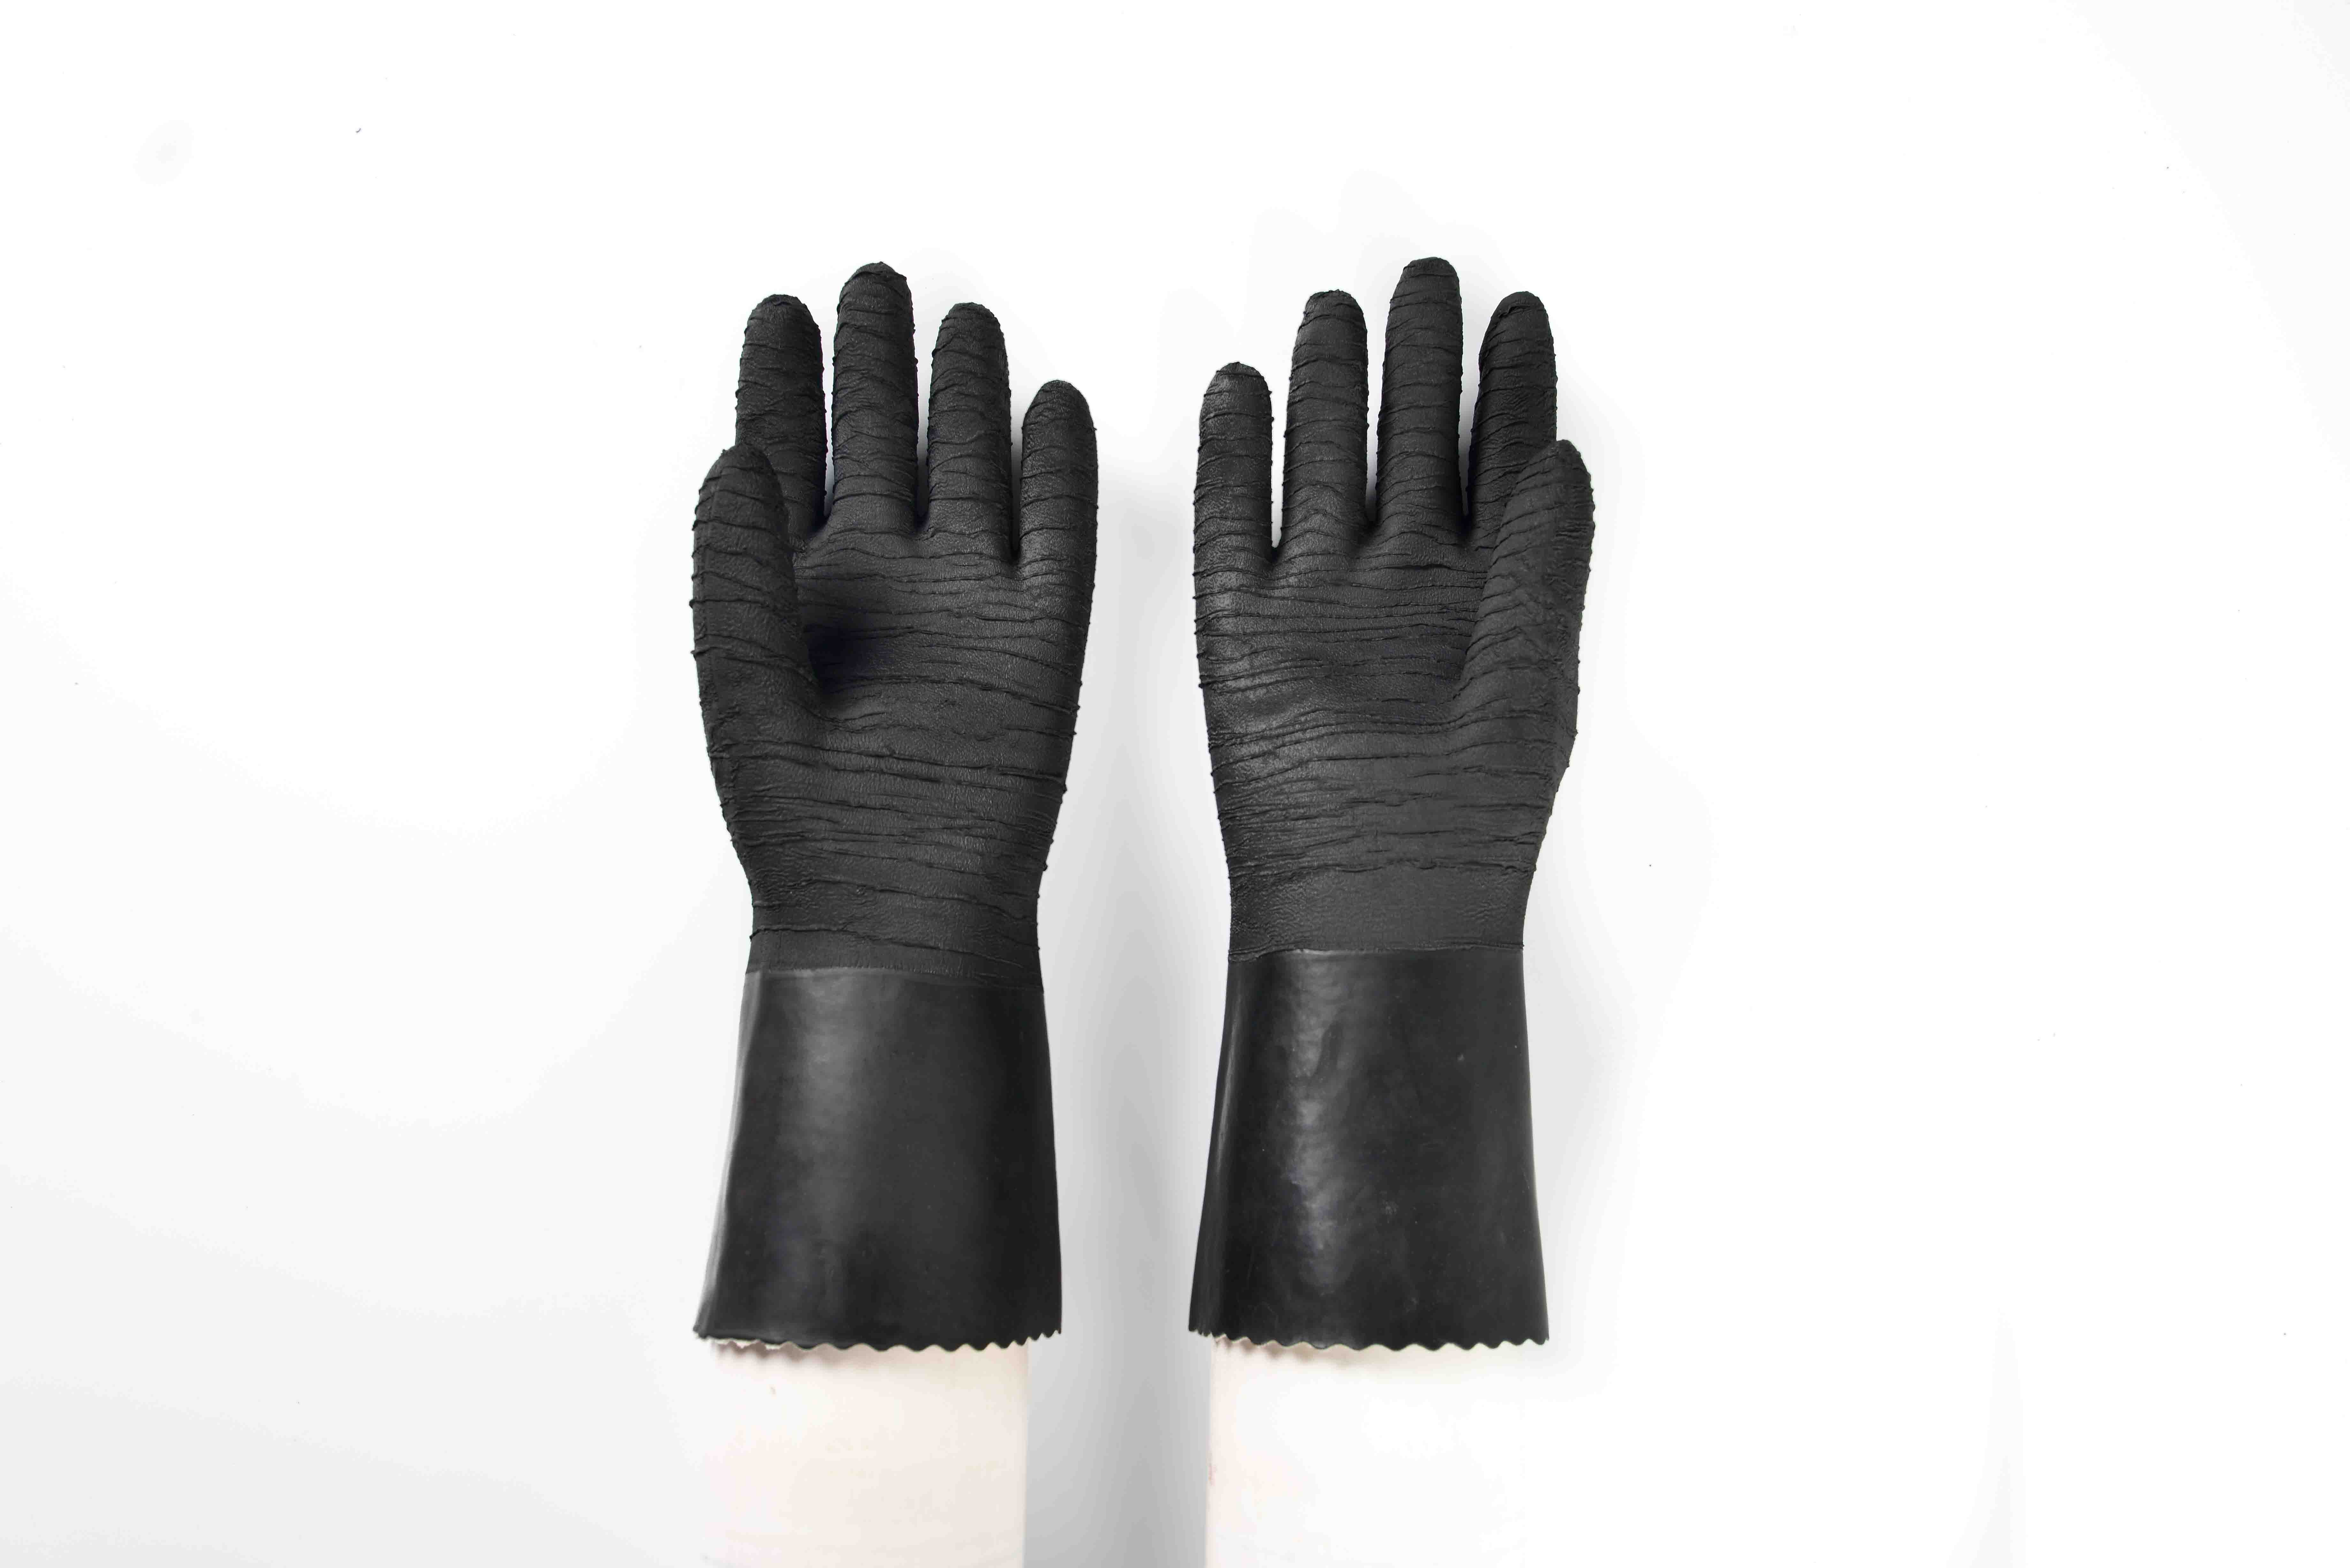 Factory Wholesale PriceList for 12″ rubber glove with cotton linning-rough finish sale to Plymouth